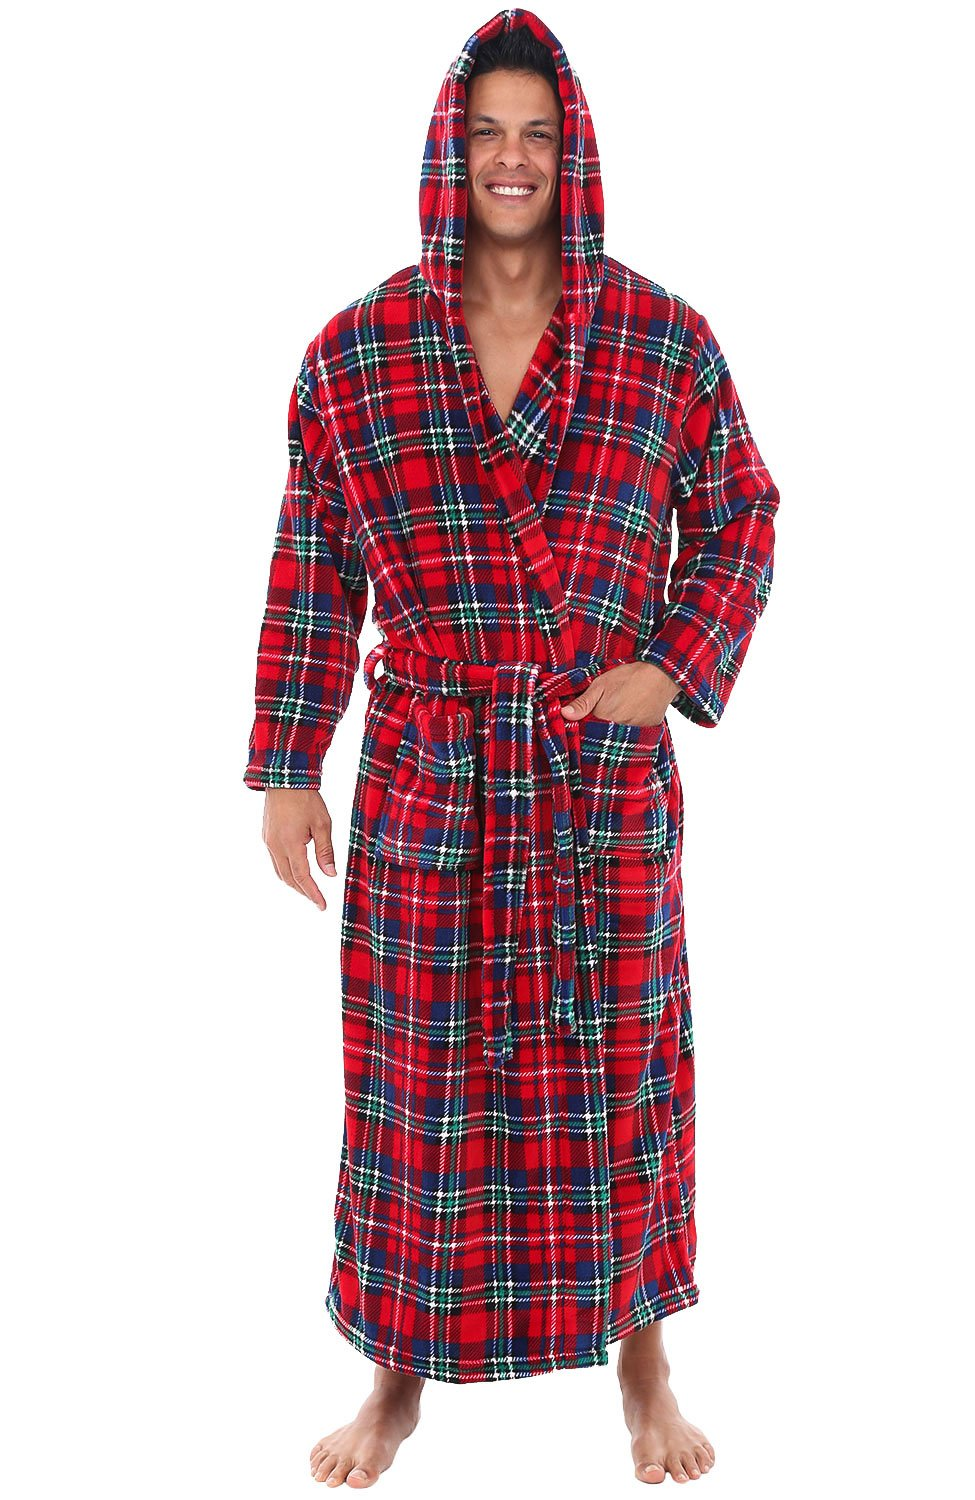 e95b1bb8e7 Buy Alexander Del Rossa Mens Fleece Robe